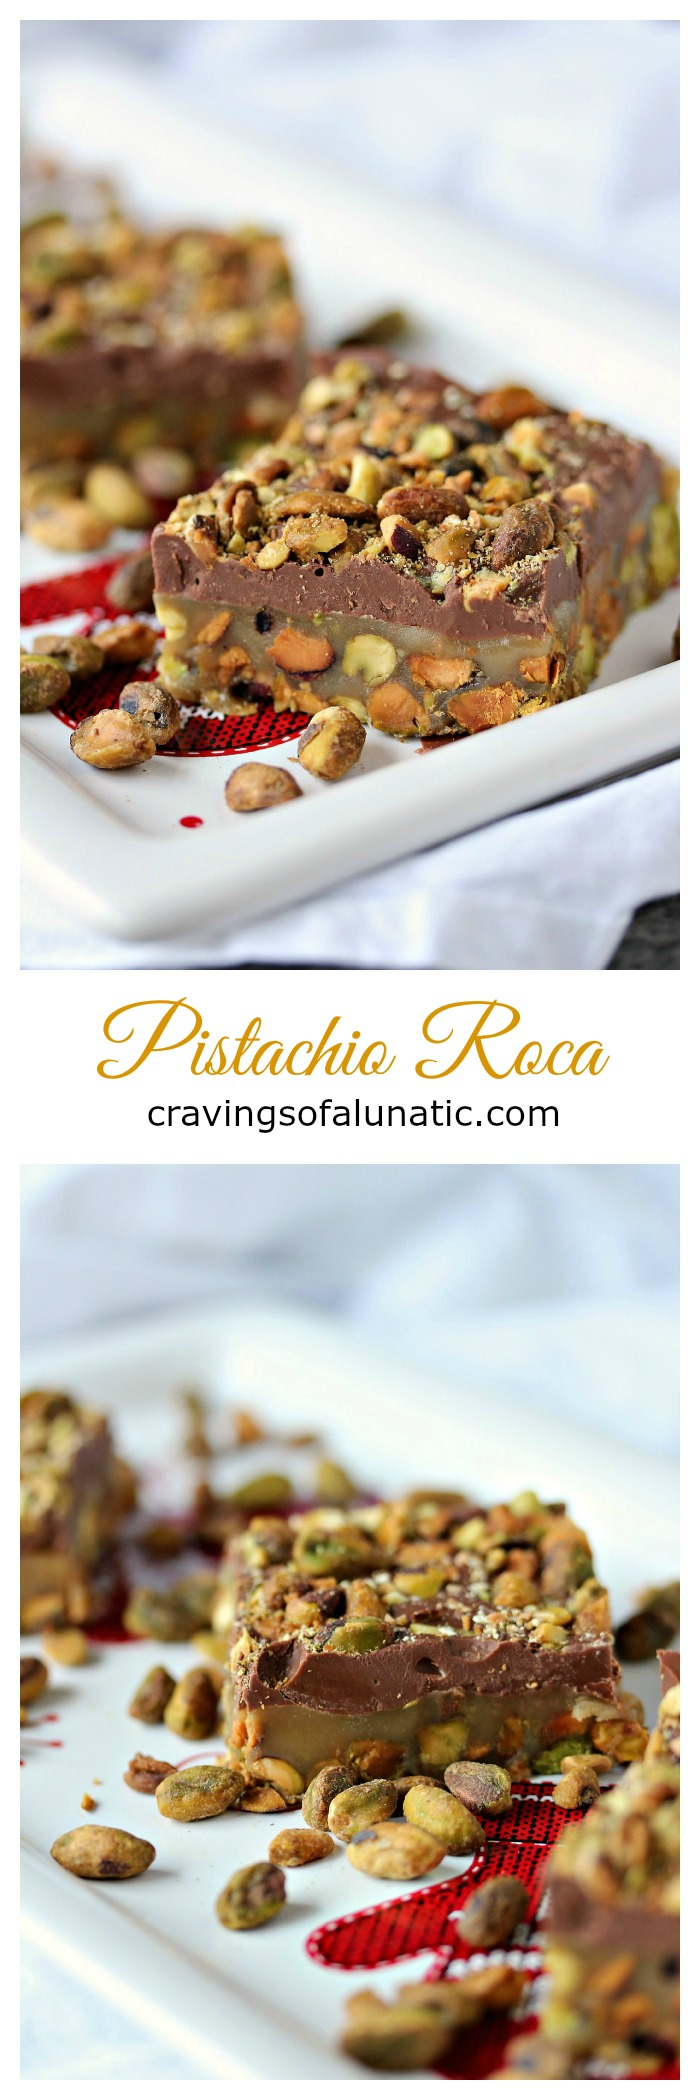 Pistachio Roca from cravingsofalunatic.com- For all my fellow Pistachio Lovers out there, this one is for YOU! It's Pistachio Roca, layers of pistachios, caramel, chocolate, and more pistachios. It's little bites of candy heaven! (@CravingsLunatic)